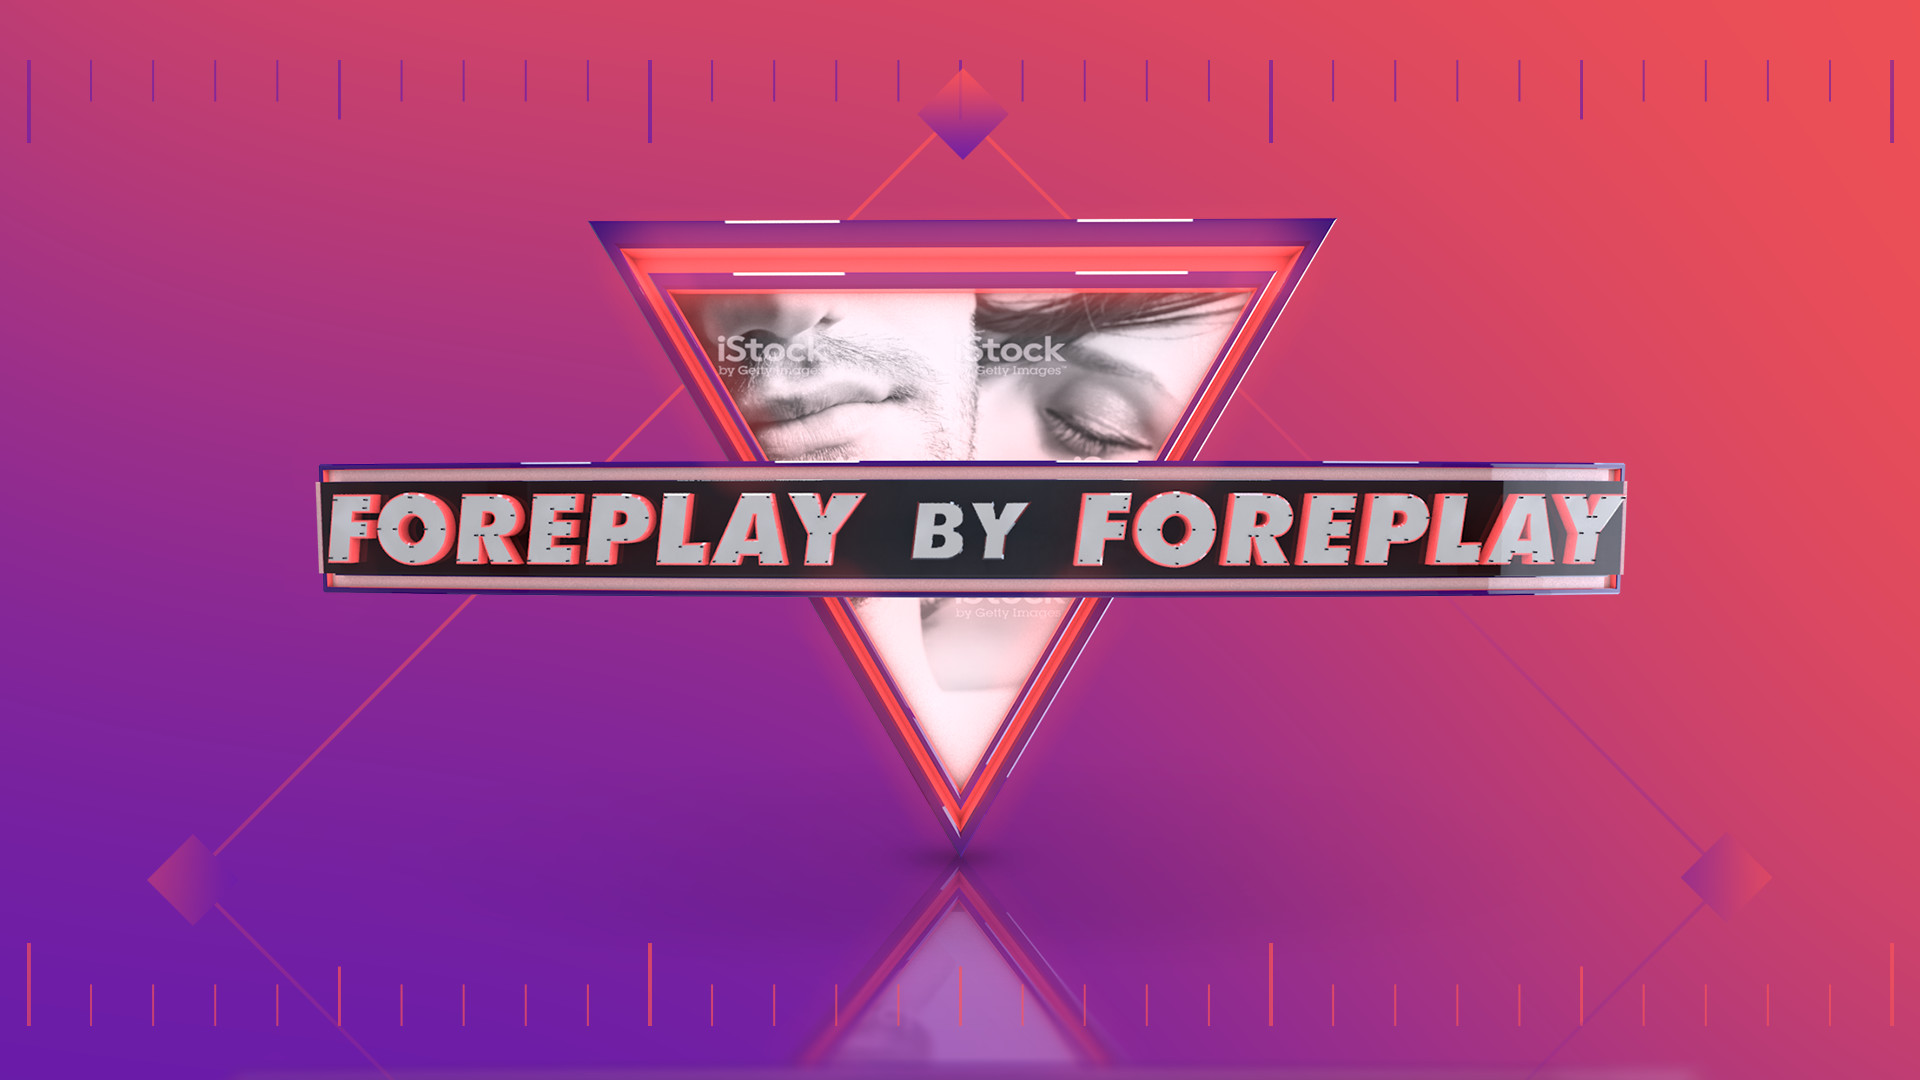 Foreplay x Foreplay Design_V5